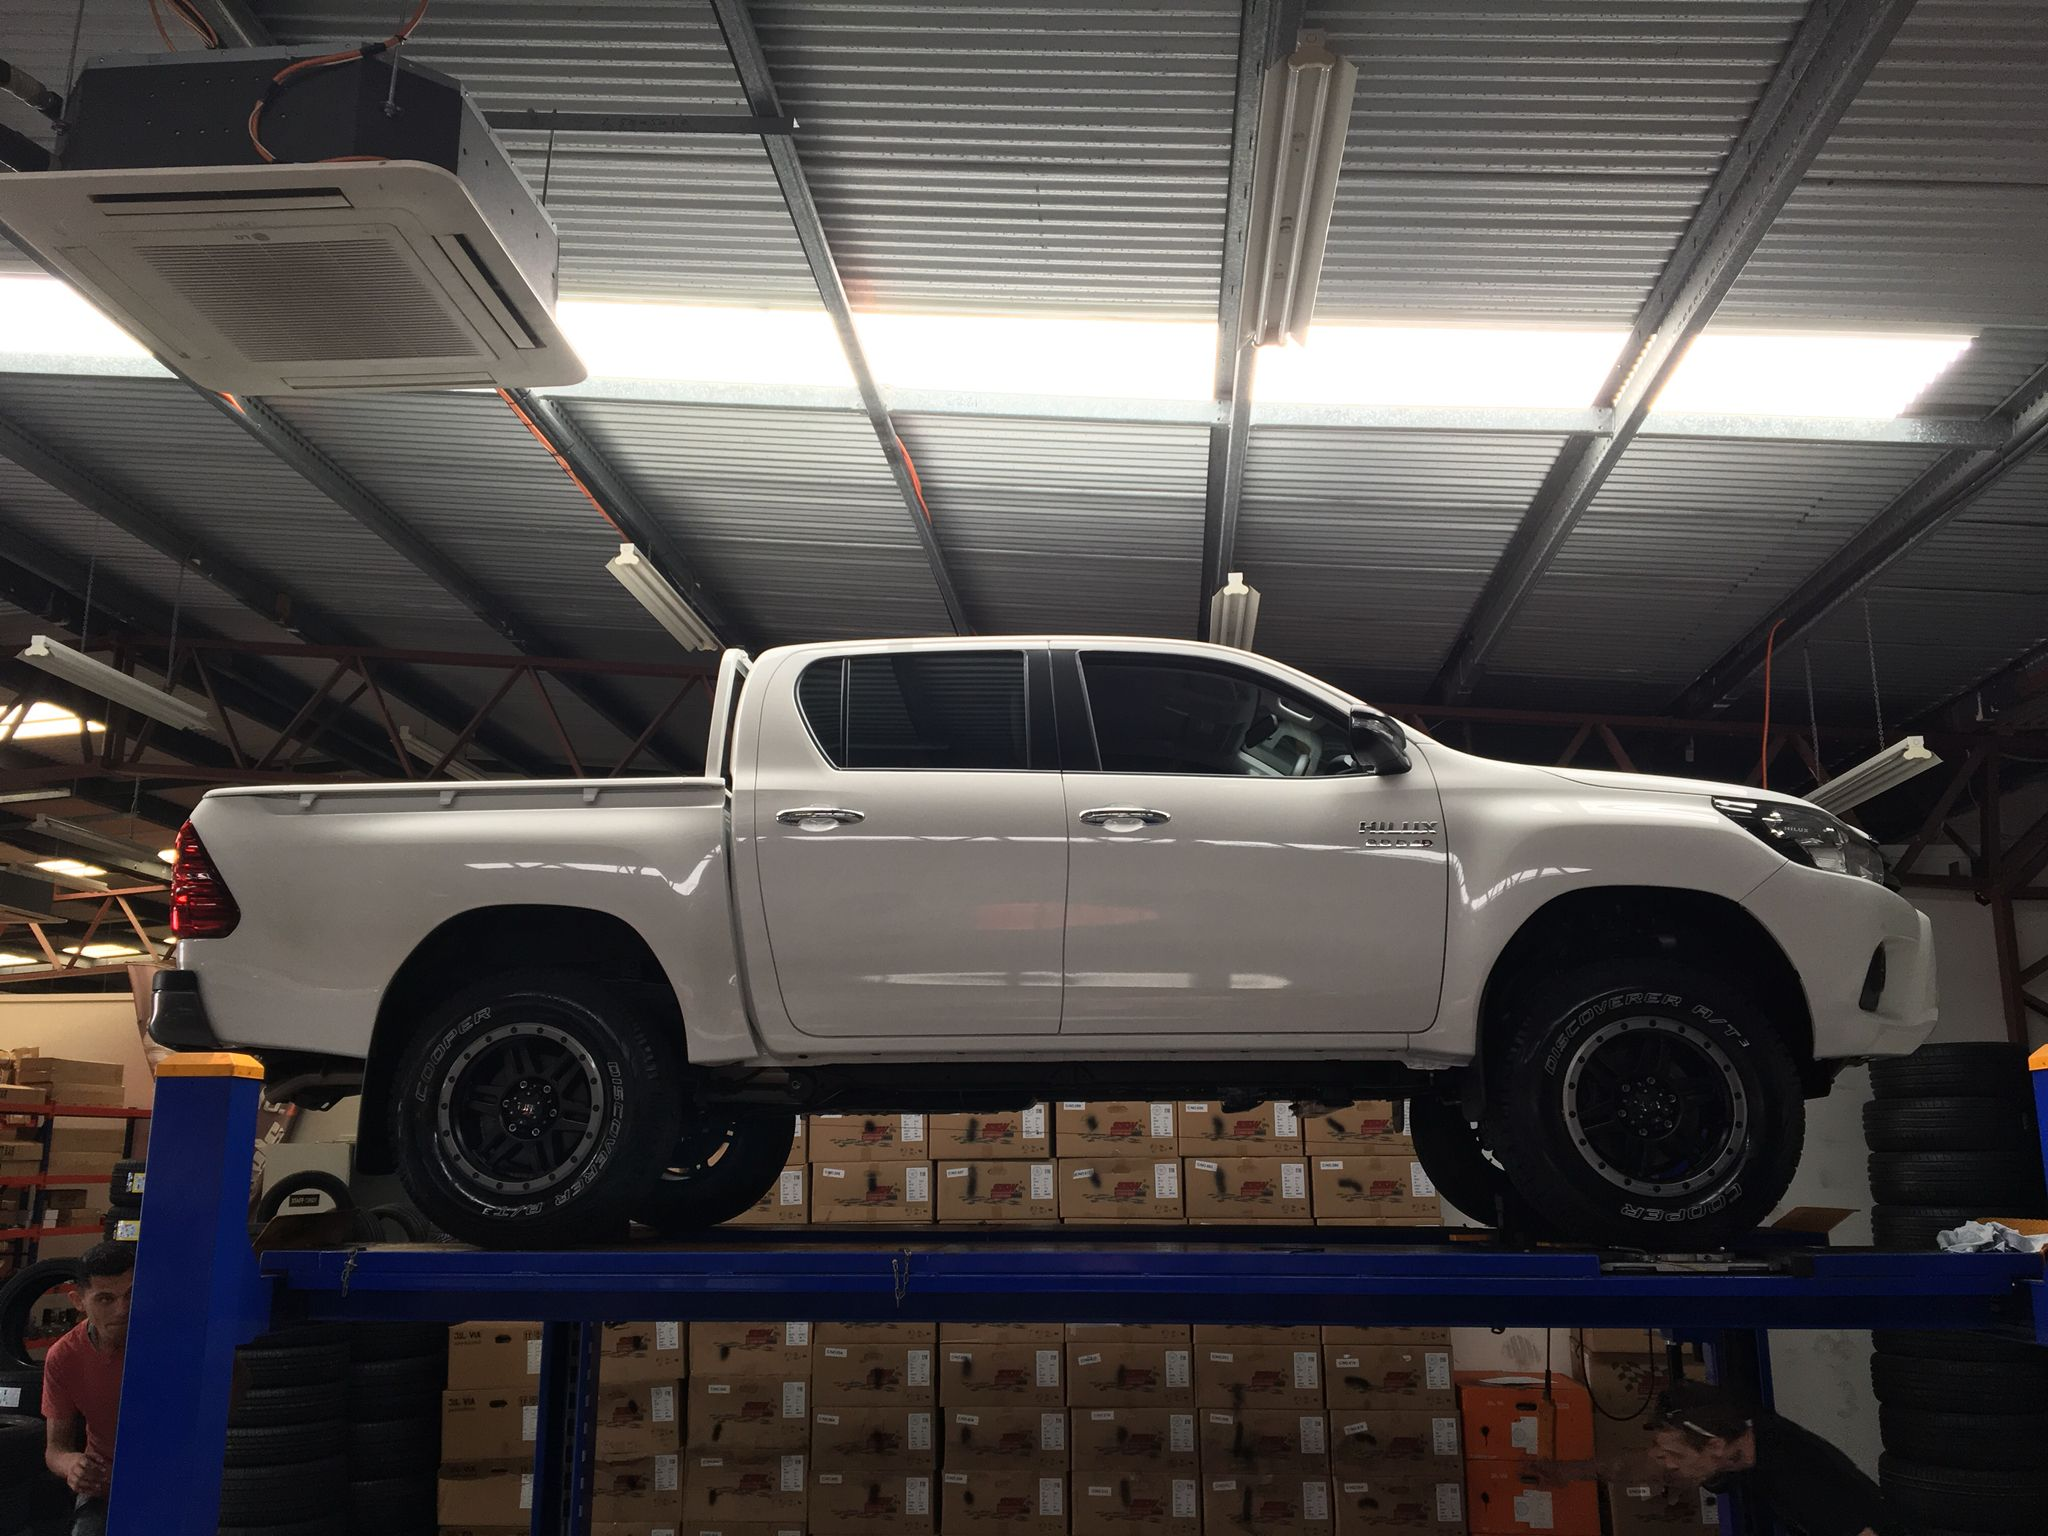 2016 Toyota Hilux Australian Sr Double Cab Pickup 2 Inch Front